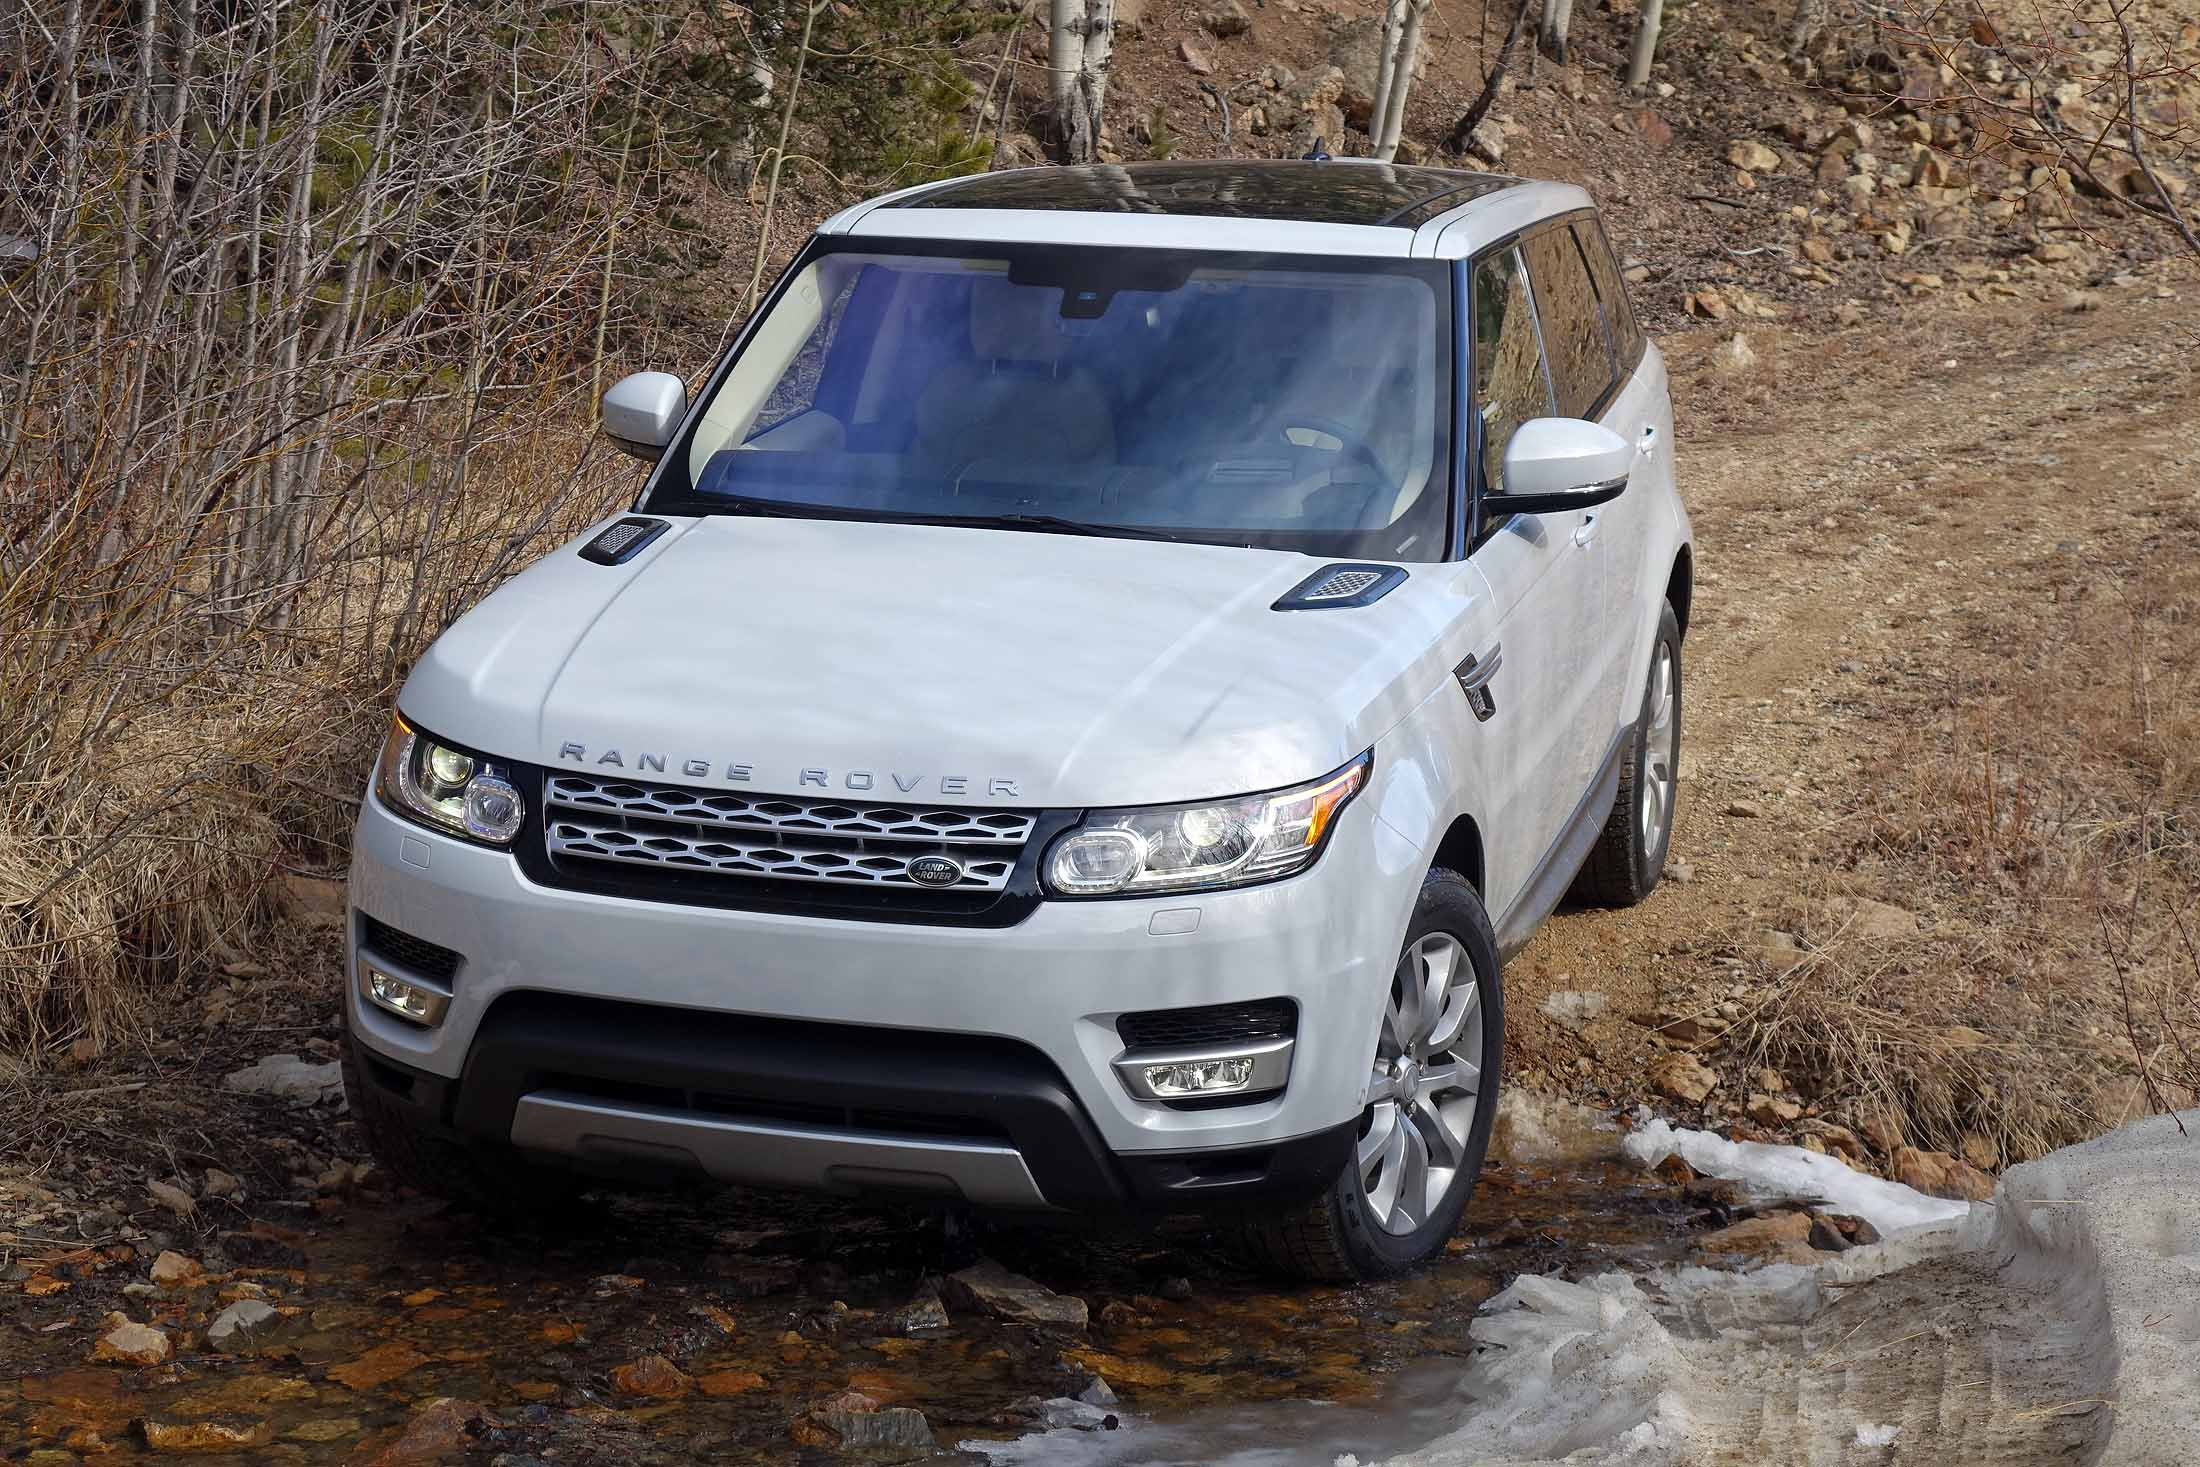 2016 land rover range rover sport hse td6 fuel economy review of luxury diesel suv. Black Bedroom Furniture Sets. Home Design Ideas